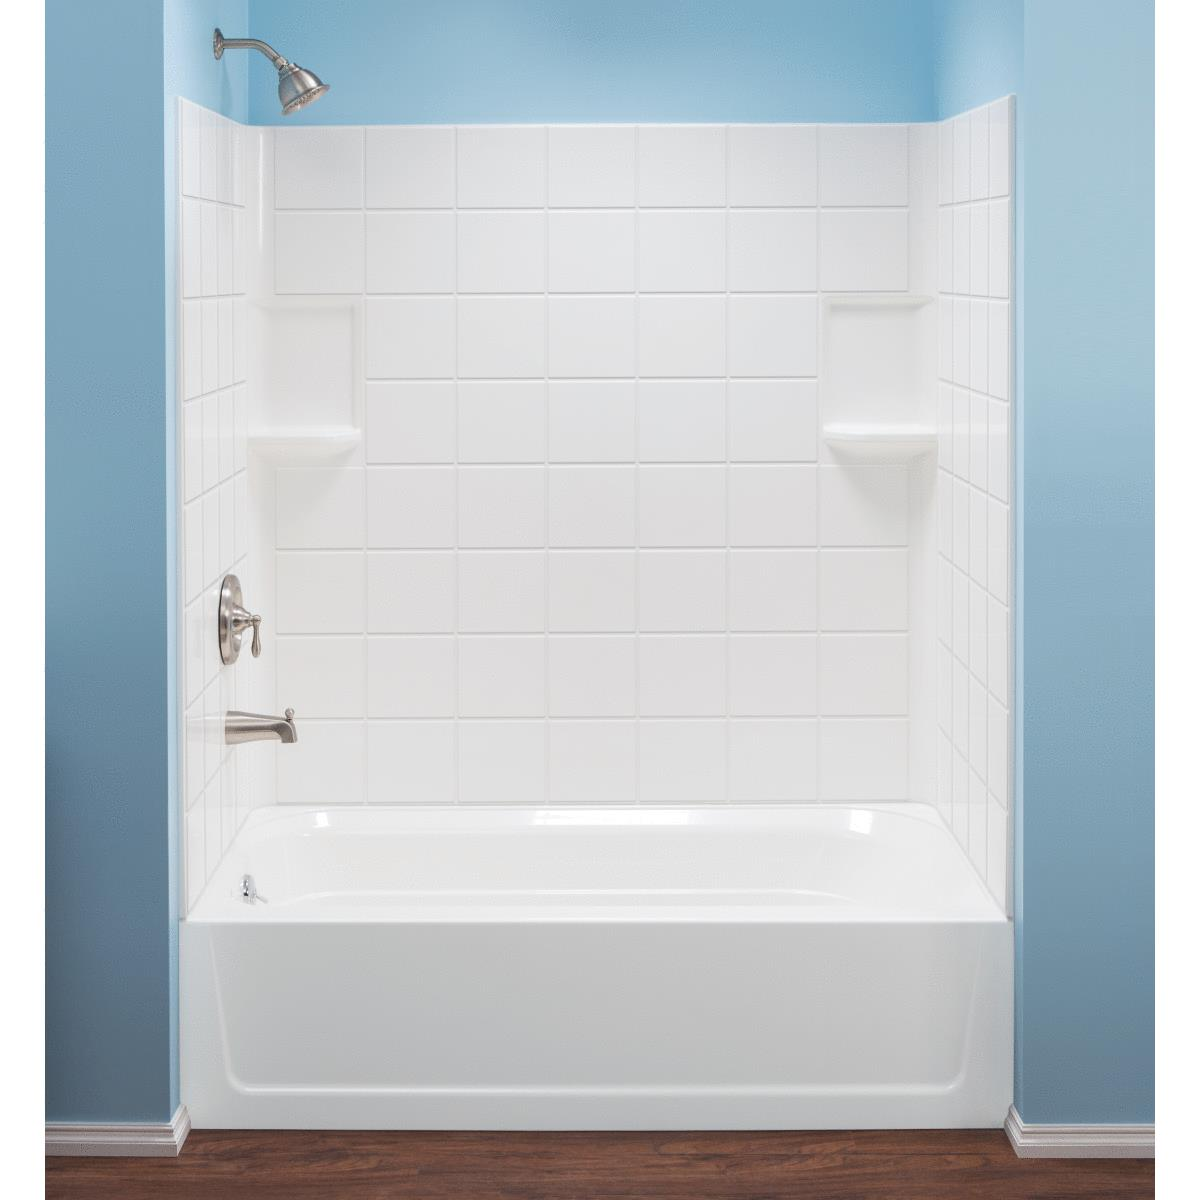 Mustee Topaz 3 Piece 60 In L X 30 In D Bathtub Tub Wall Kit In White Tile Pattern Cash Carry Do It Center